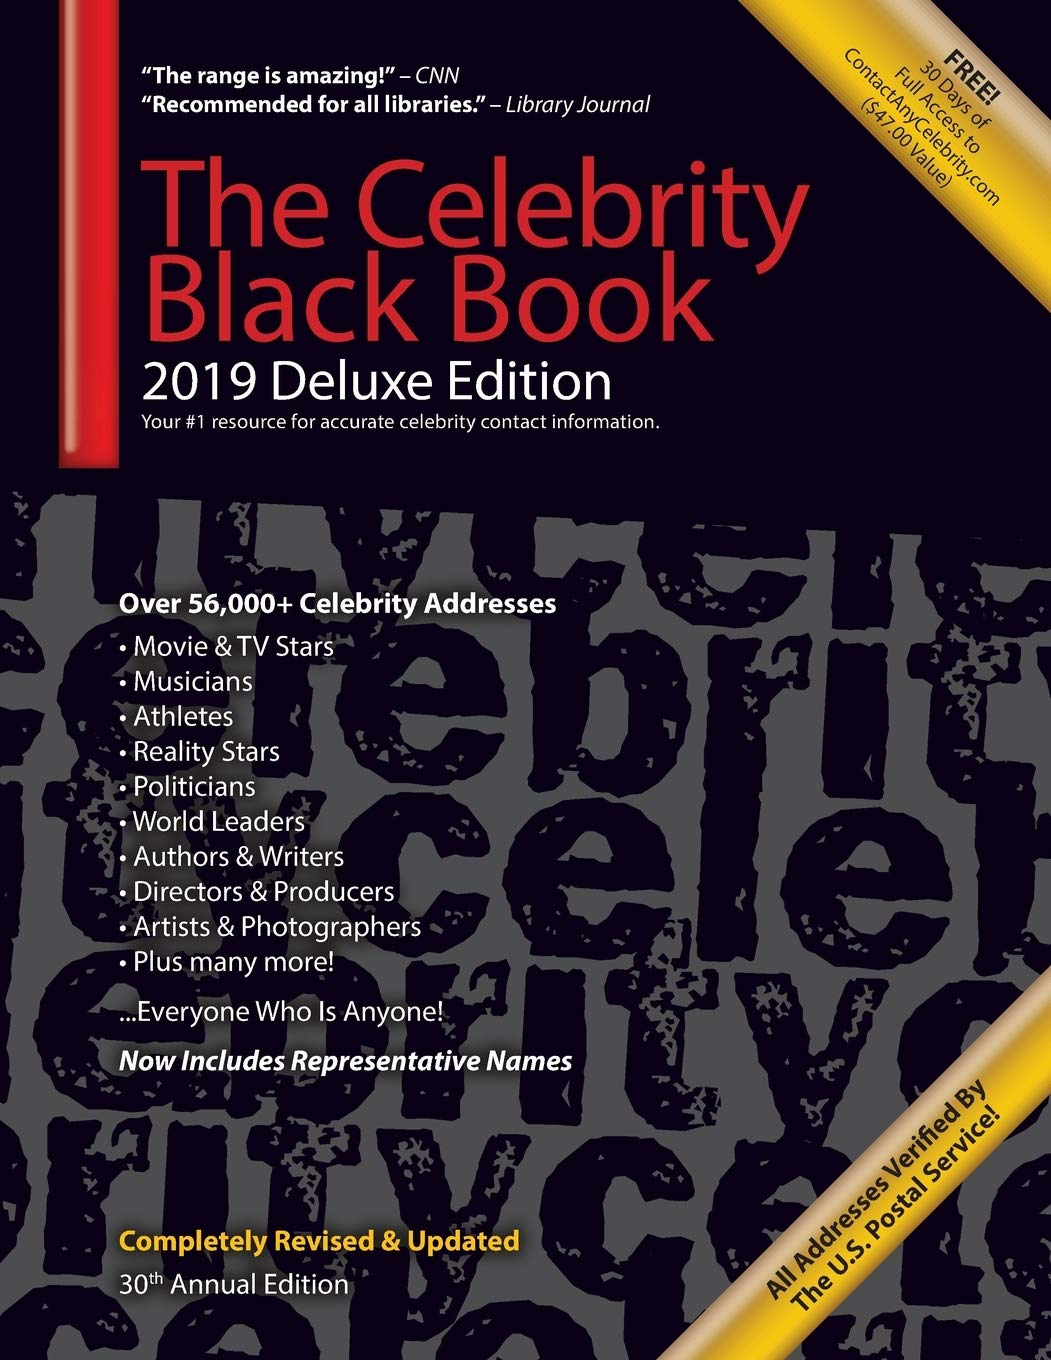 The Celebrity Black Book 2019 (Deluxe Edition): Over 56000+ Verified Celebrity Addresses for Autographs & Memorabilia Nonprofit Fundraising ... Small Business Sales/Marketing & More!